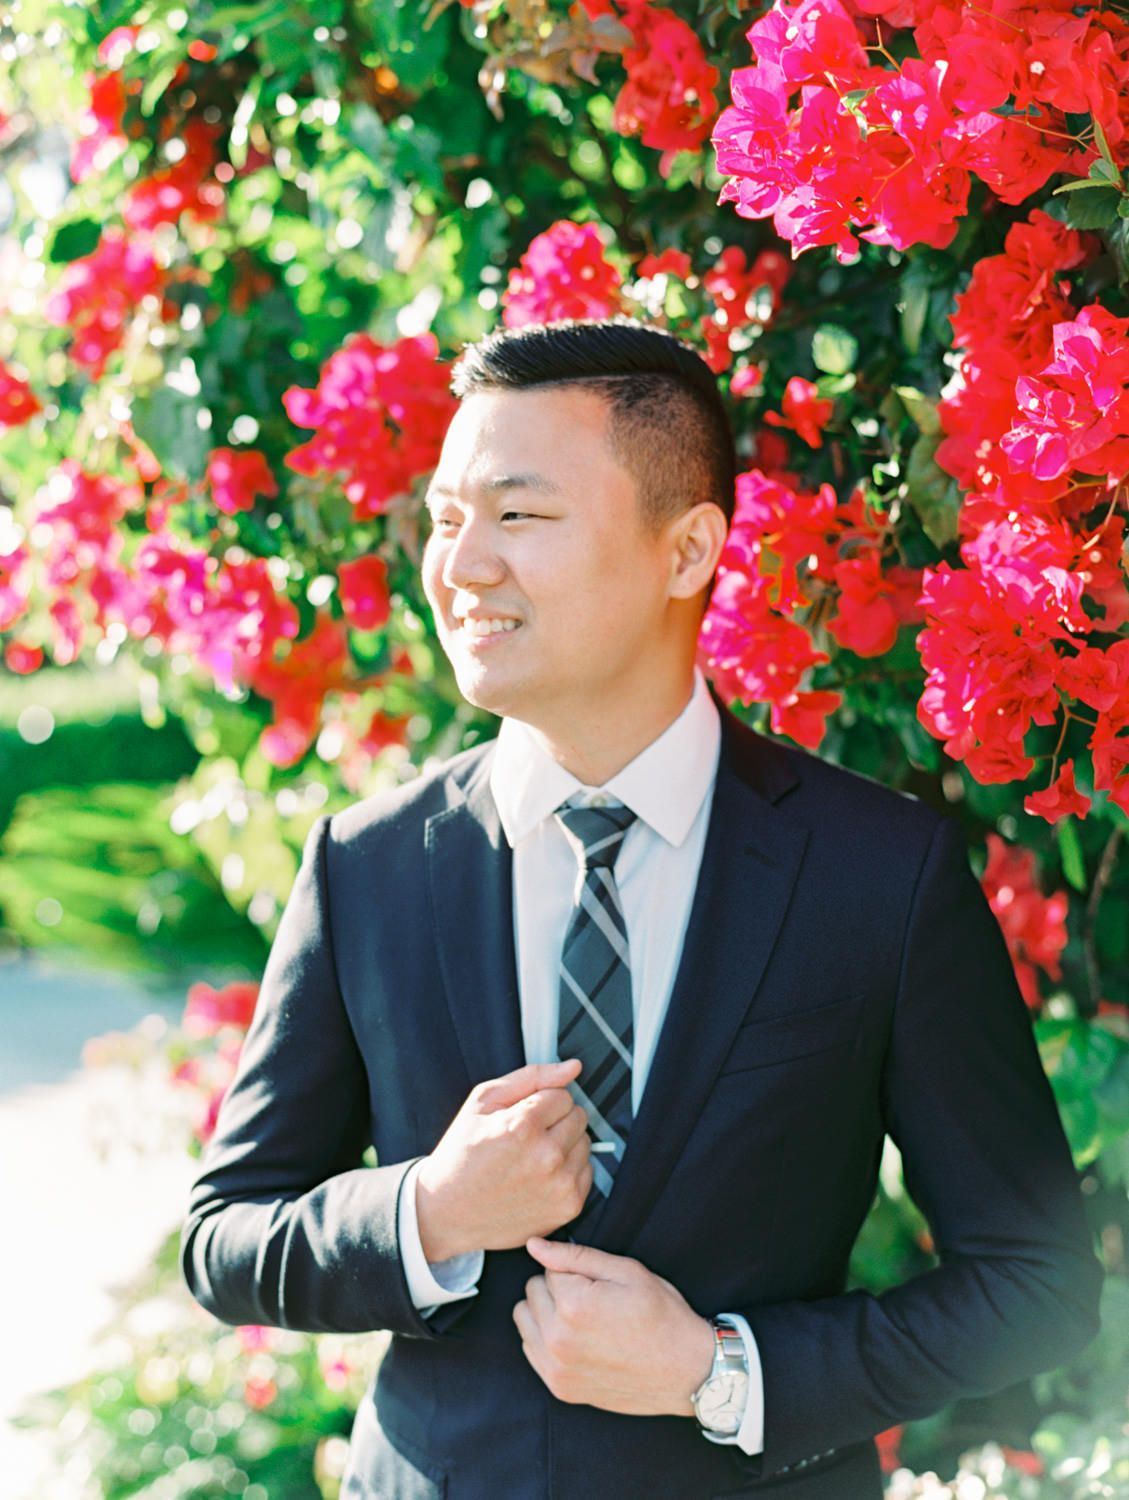 Groom in suit and tie in front of a pink bougainvillea bush. Coronado Centennial Park Engagement Photo by Cavin Elizabeth Photography - San Diego film photographer